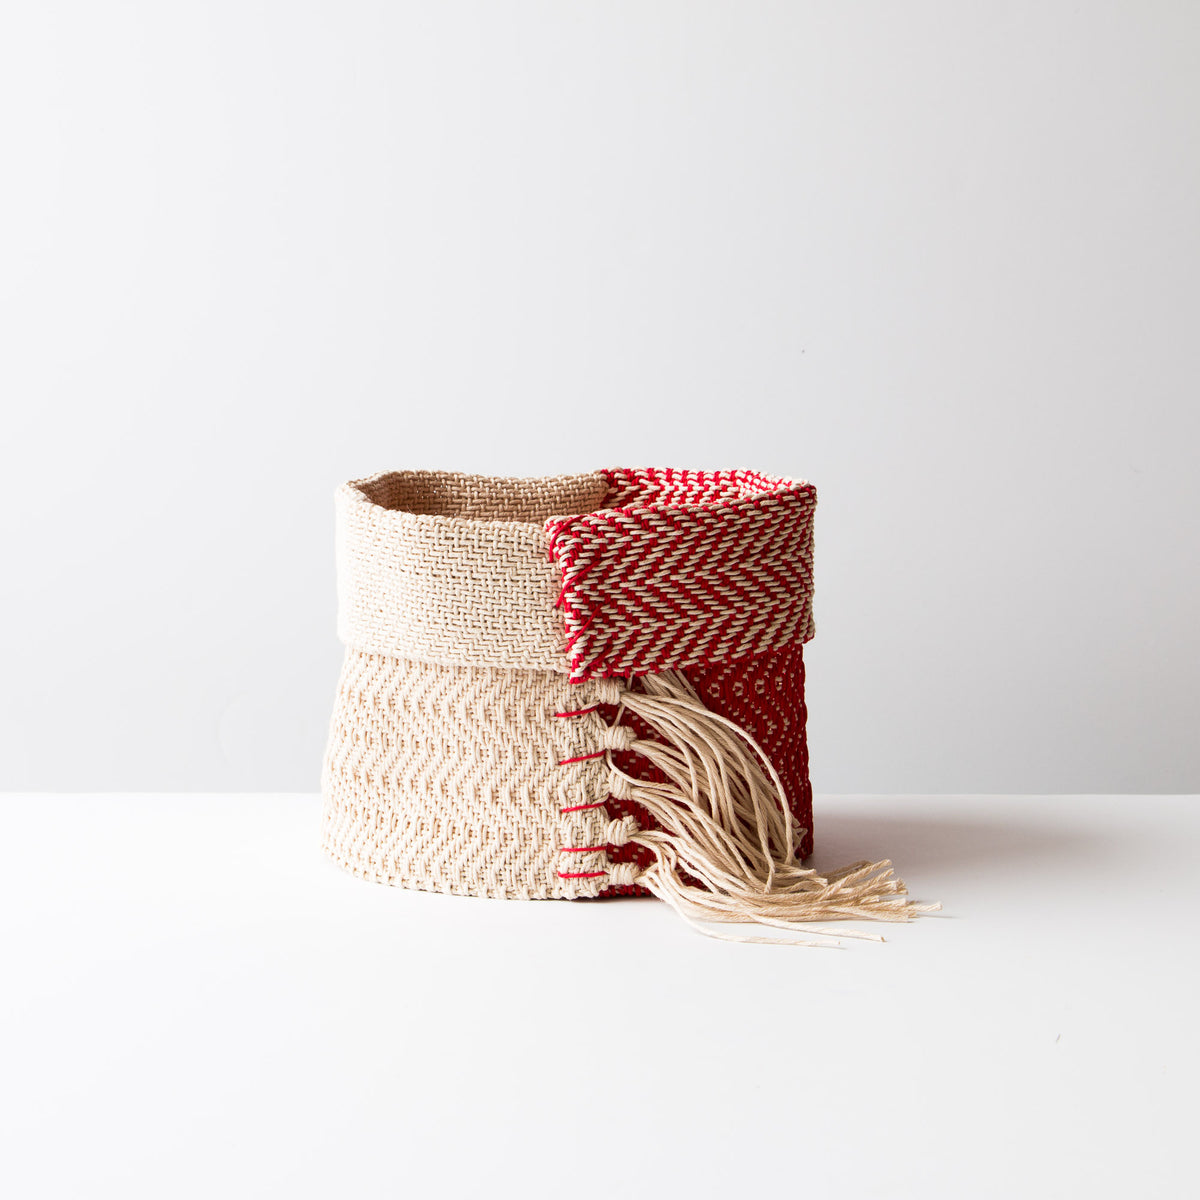 Red & Ecru - Hemp Table Basket (Medium) - Handwoven in Montreal, Quebec, Canada - Sold by Chic & Basta